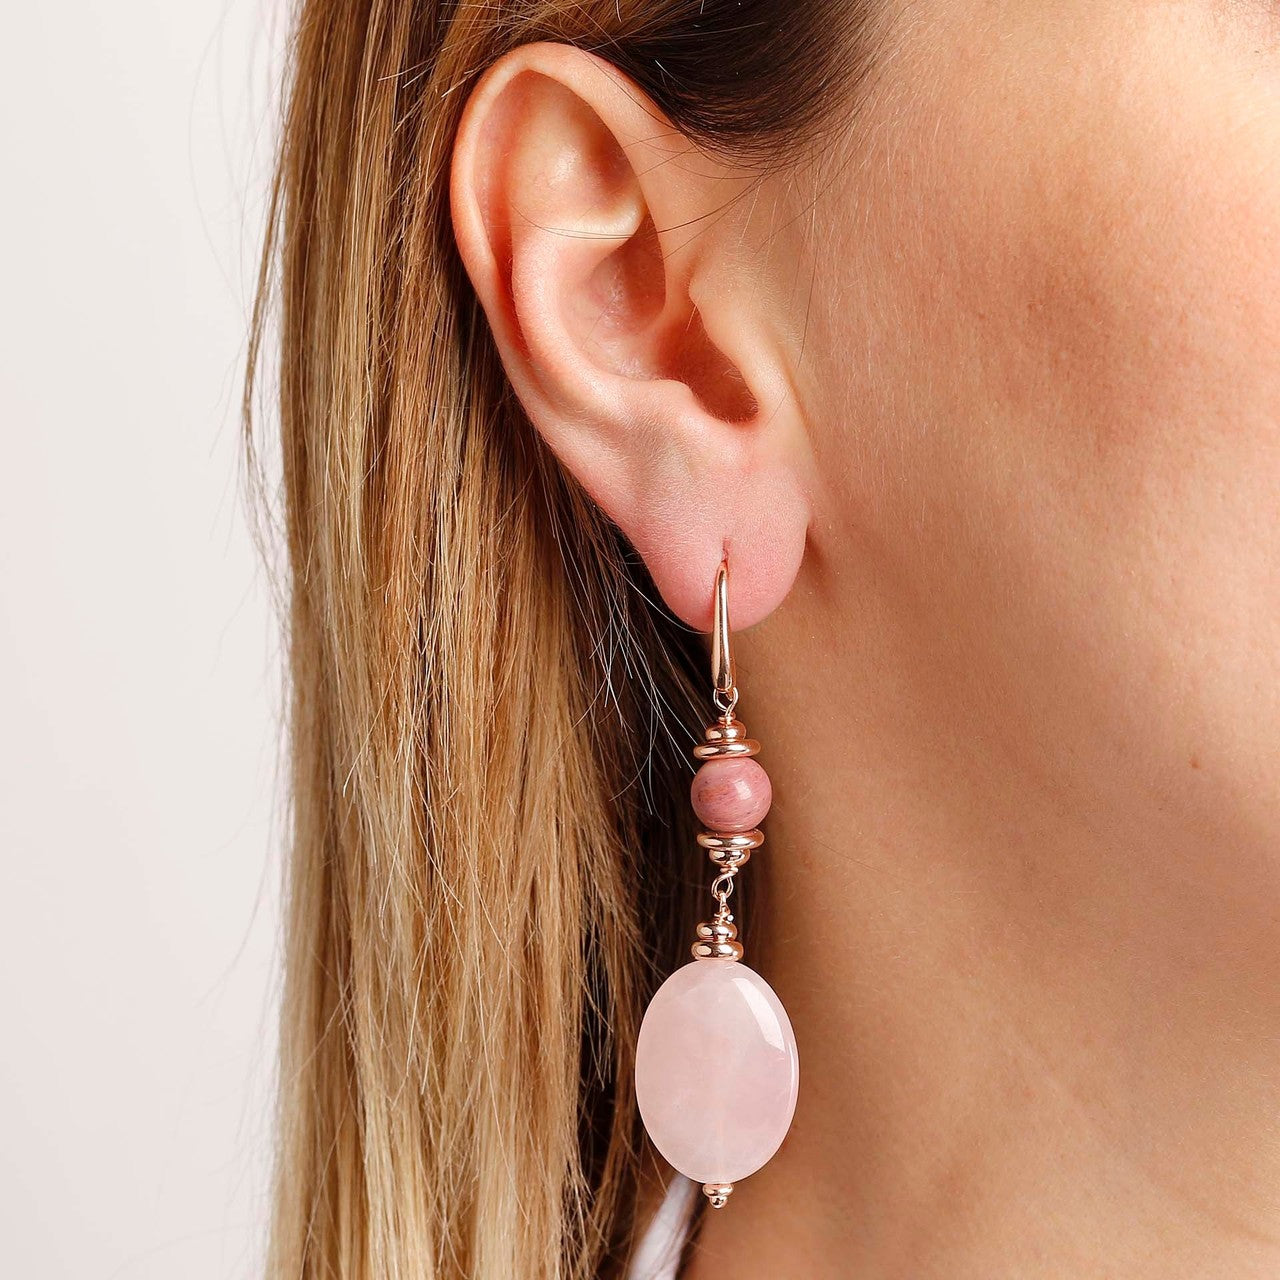 worn Pink Dangle Earrings